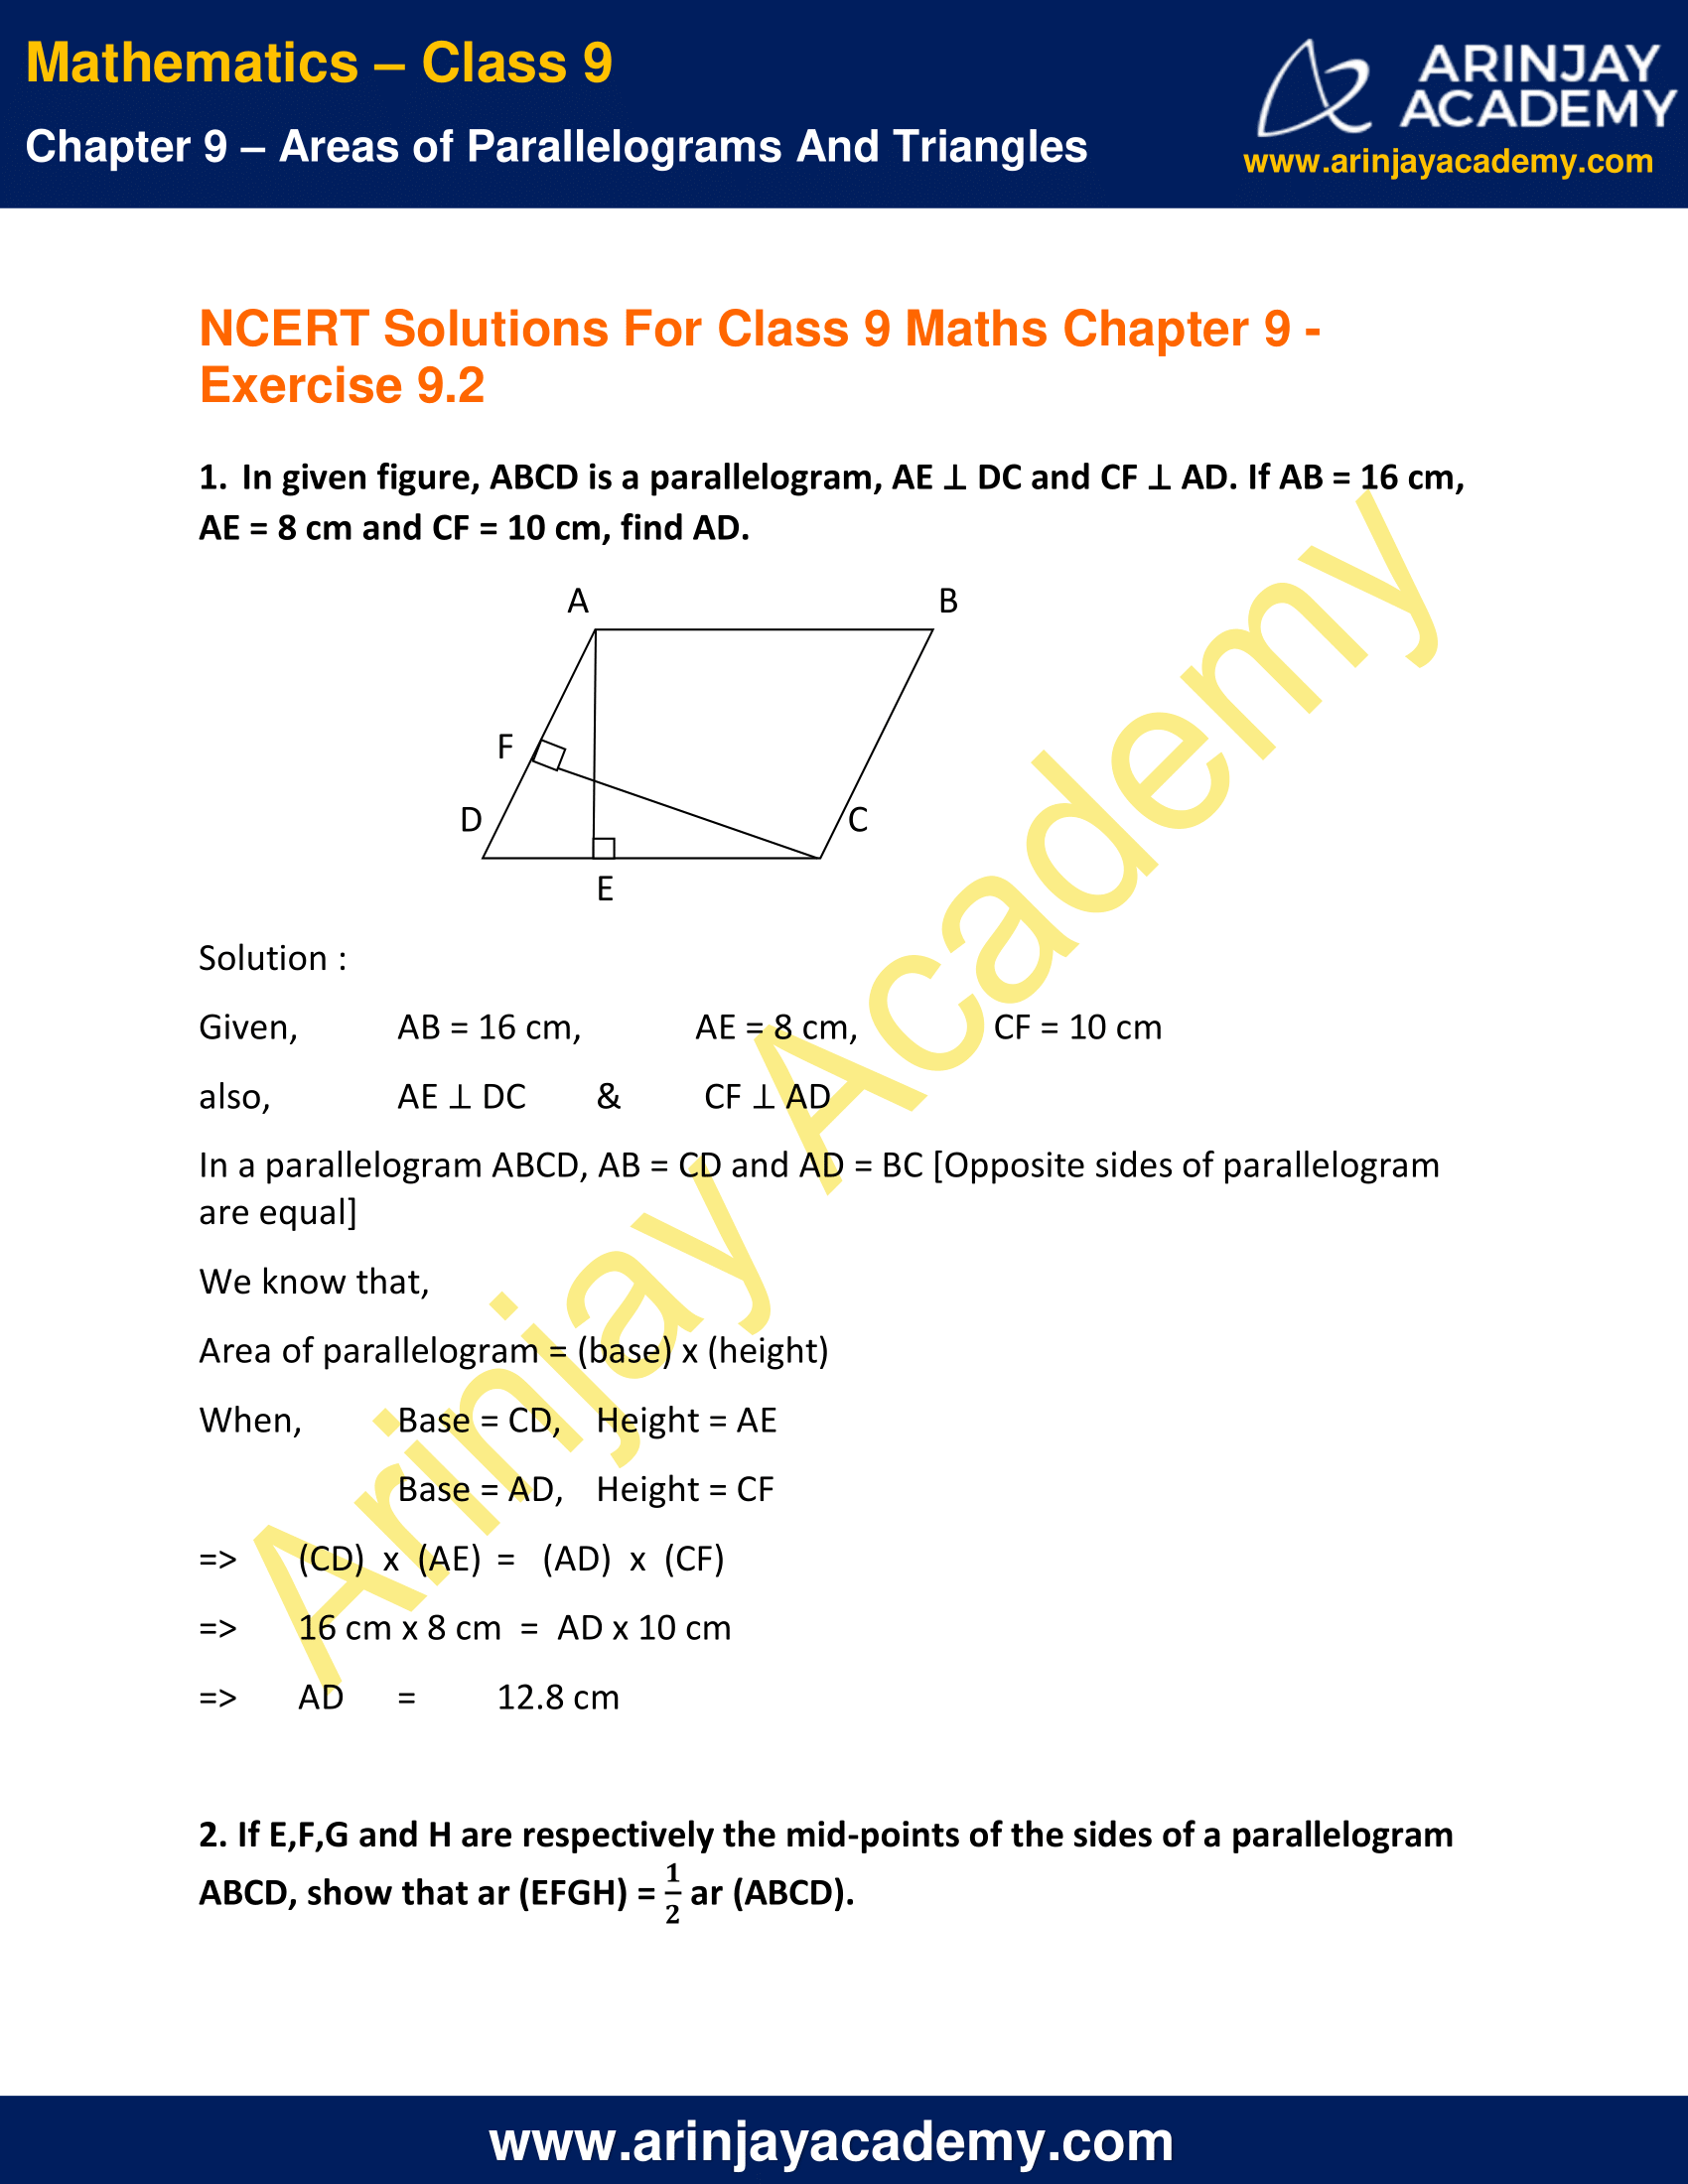 NCERT Solutions for Class 9 Maths Chapter 9 Exercise 9.2 image 1